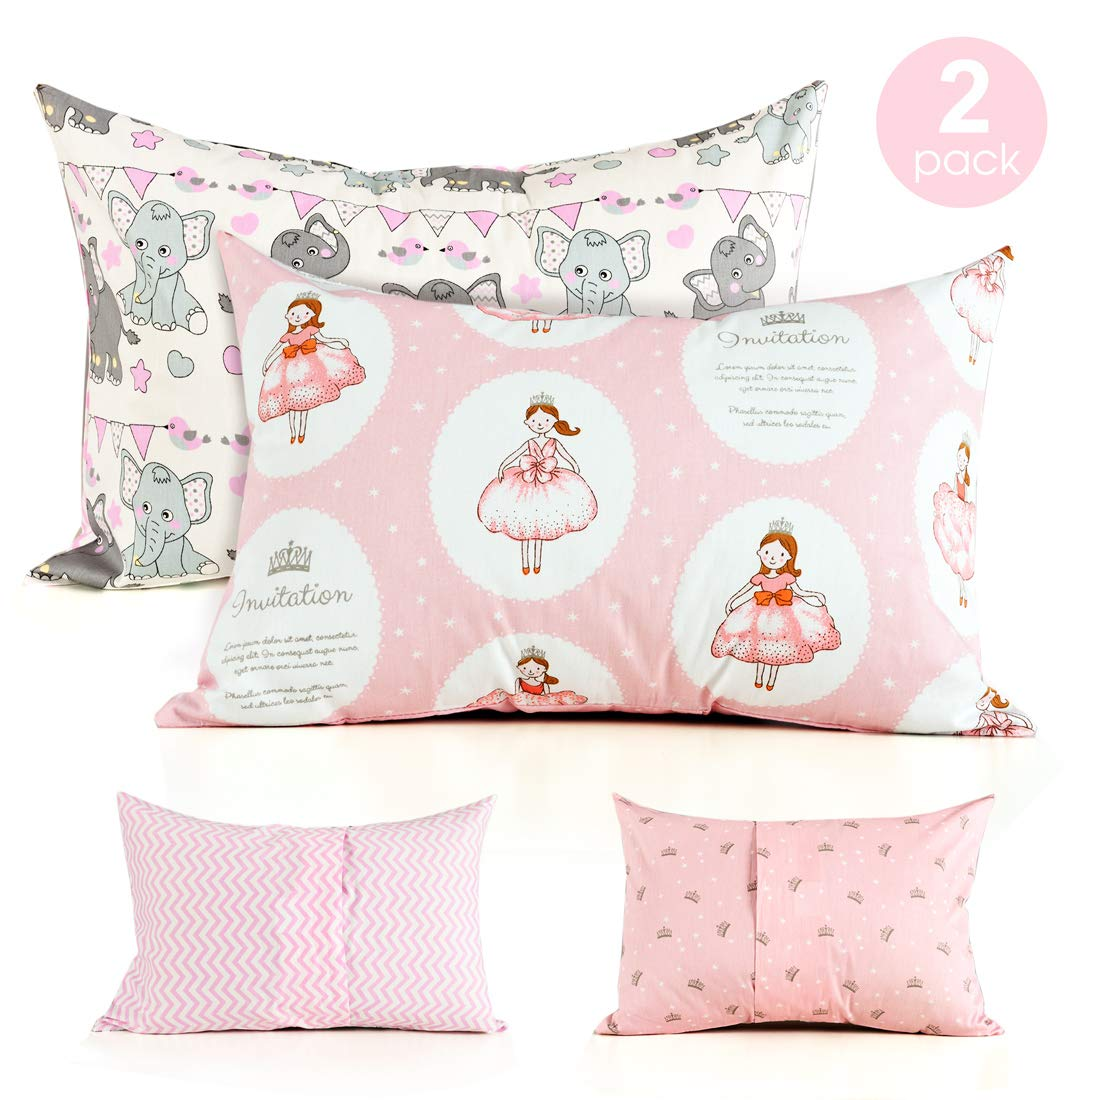 ALVABABY Nursing Pillow Cover Slipcover,100/% Organic Cotton,Soft and Comfortable,Feathers Design,Maternity Breastfeeding Newborn Infant Feeding Cushion Cover,Baby Shower Gift ZT-Z21